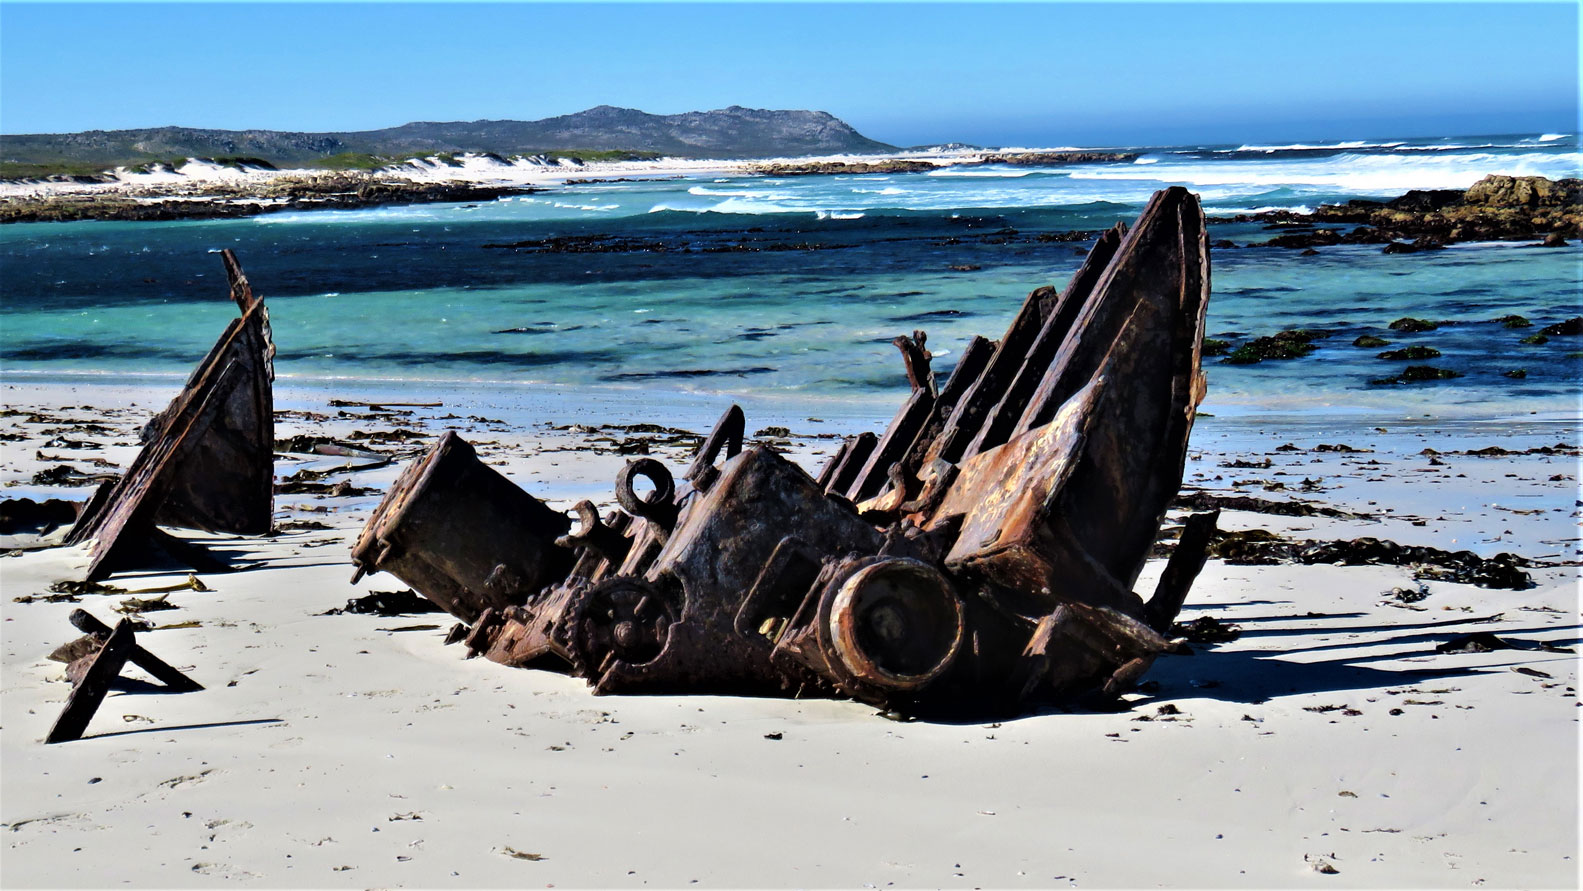 Olifantsbos Shipwreck Trail - Top 5 Hiking Trails in Cape Town